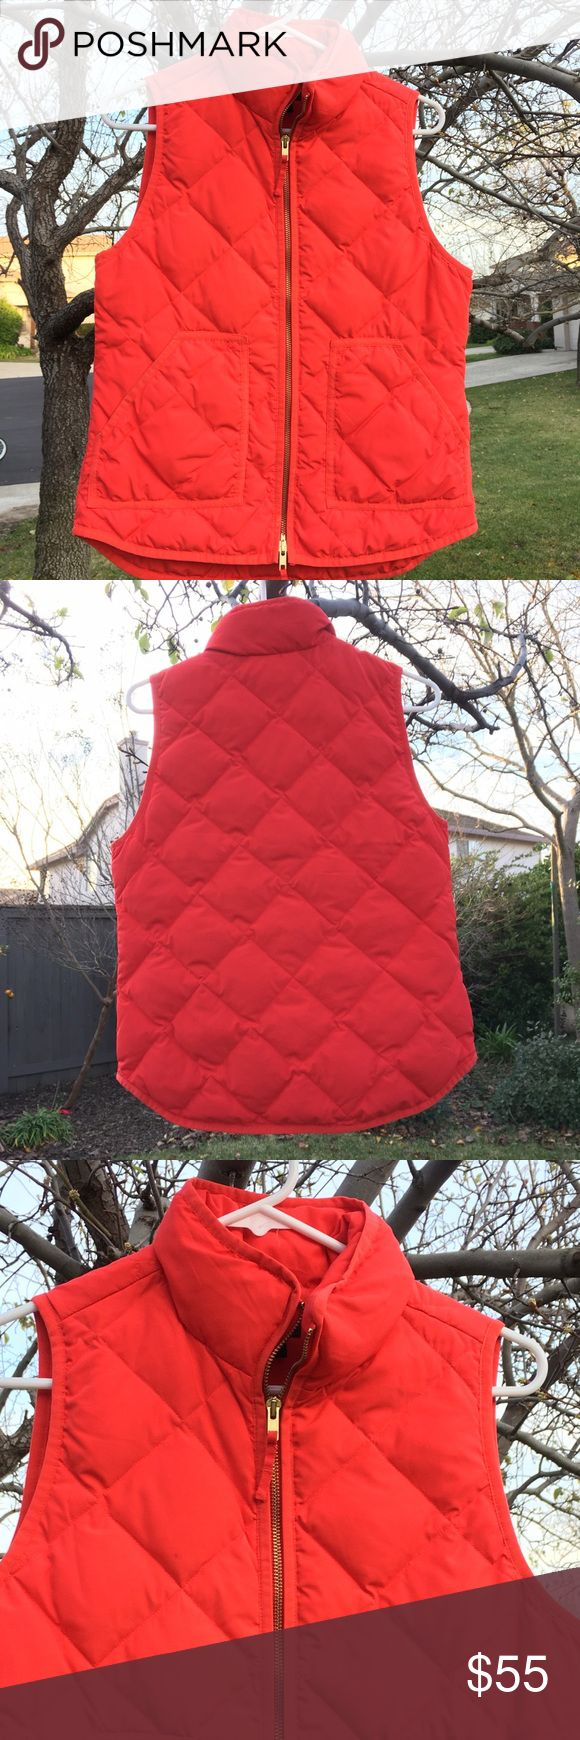 1000 Ideas About Excursion Vest On Pinterest Quilted